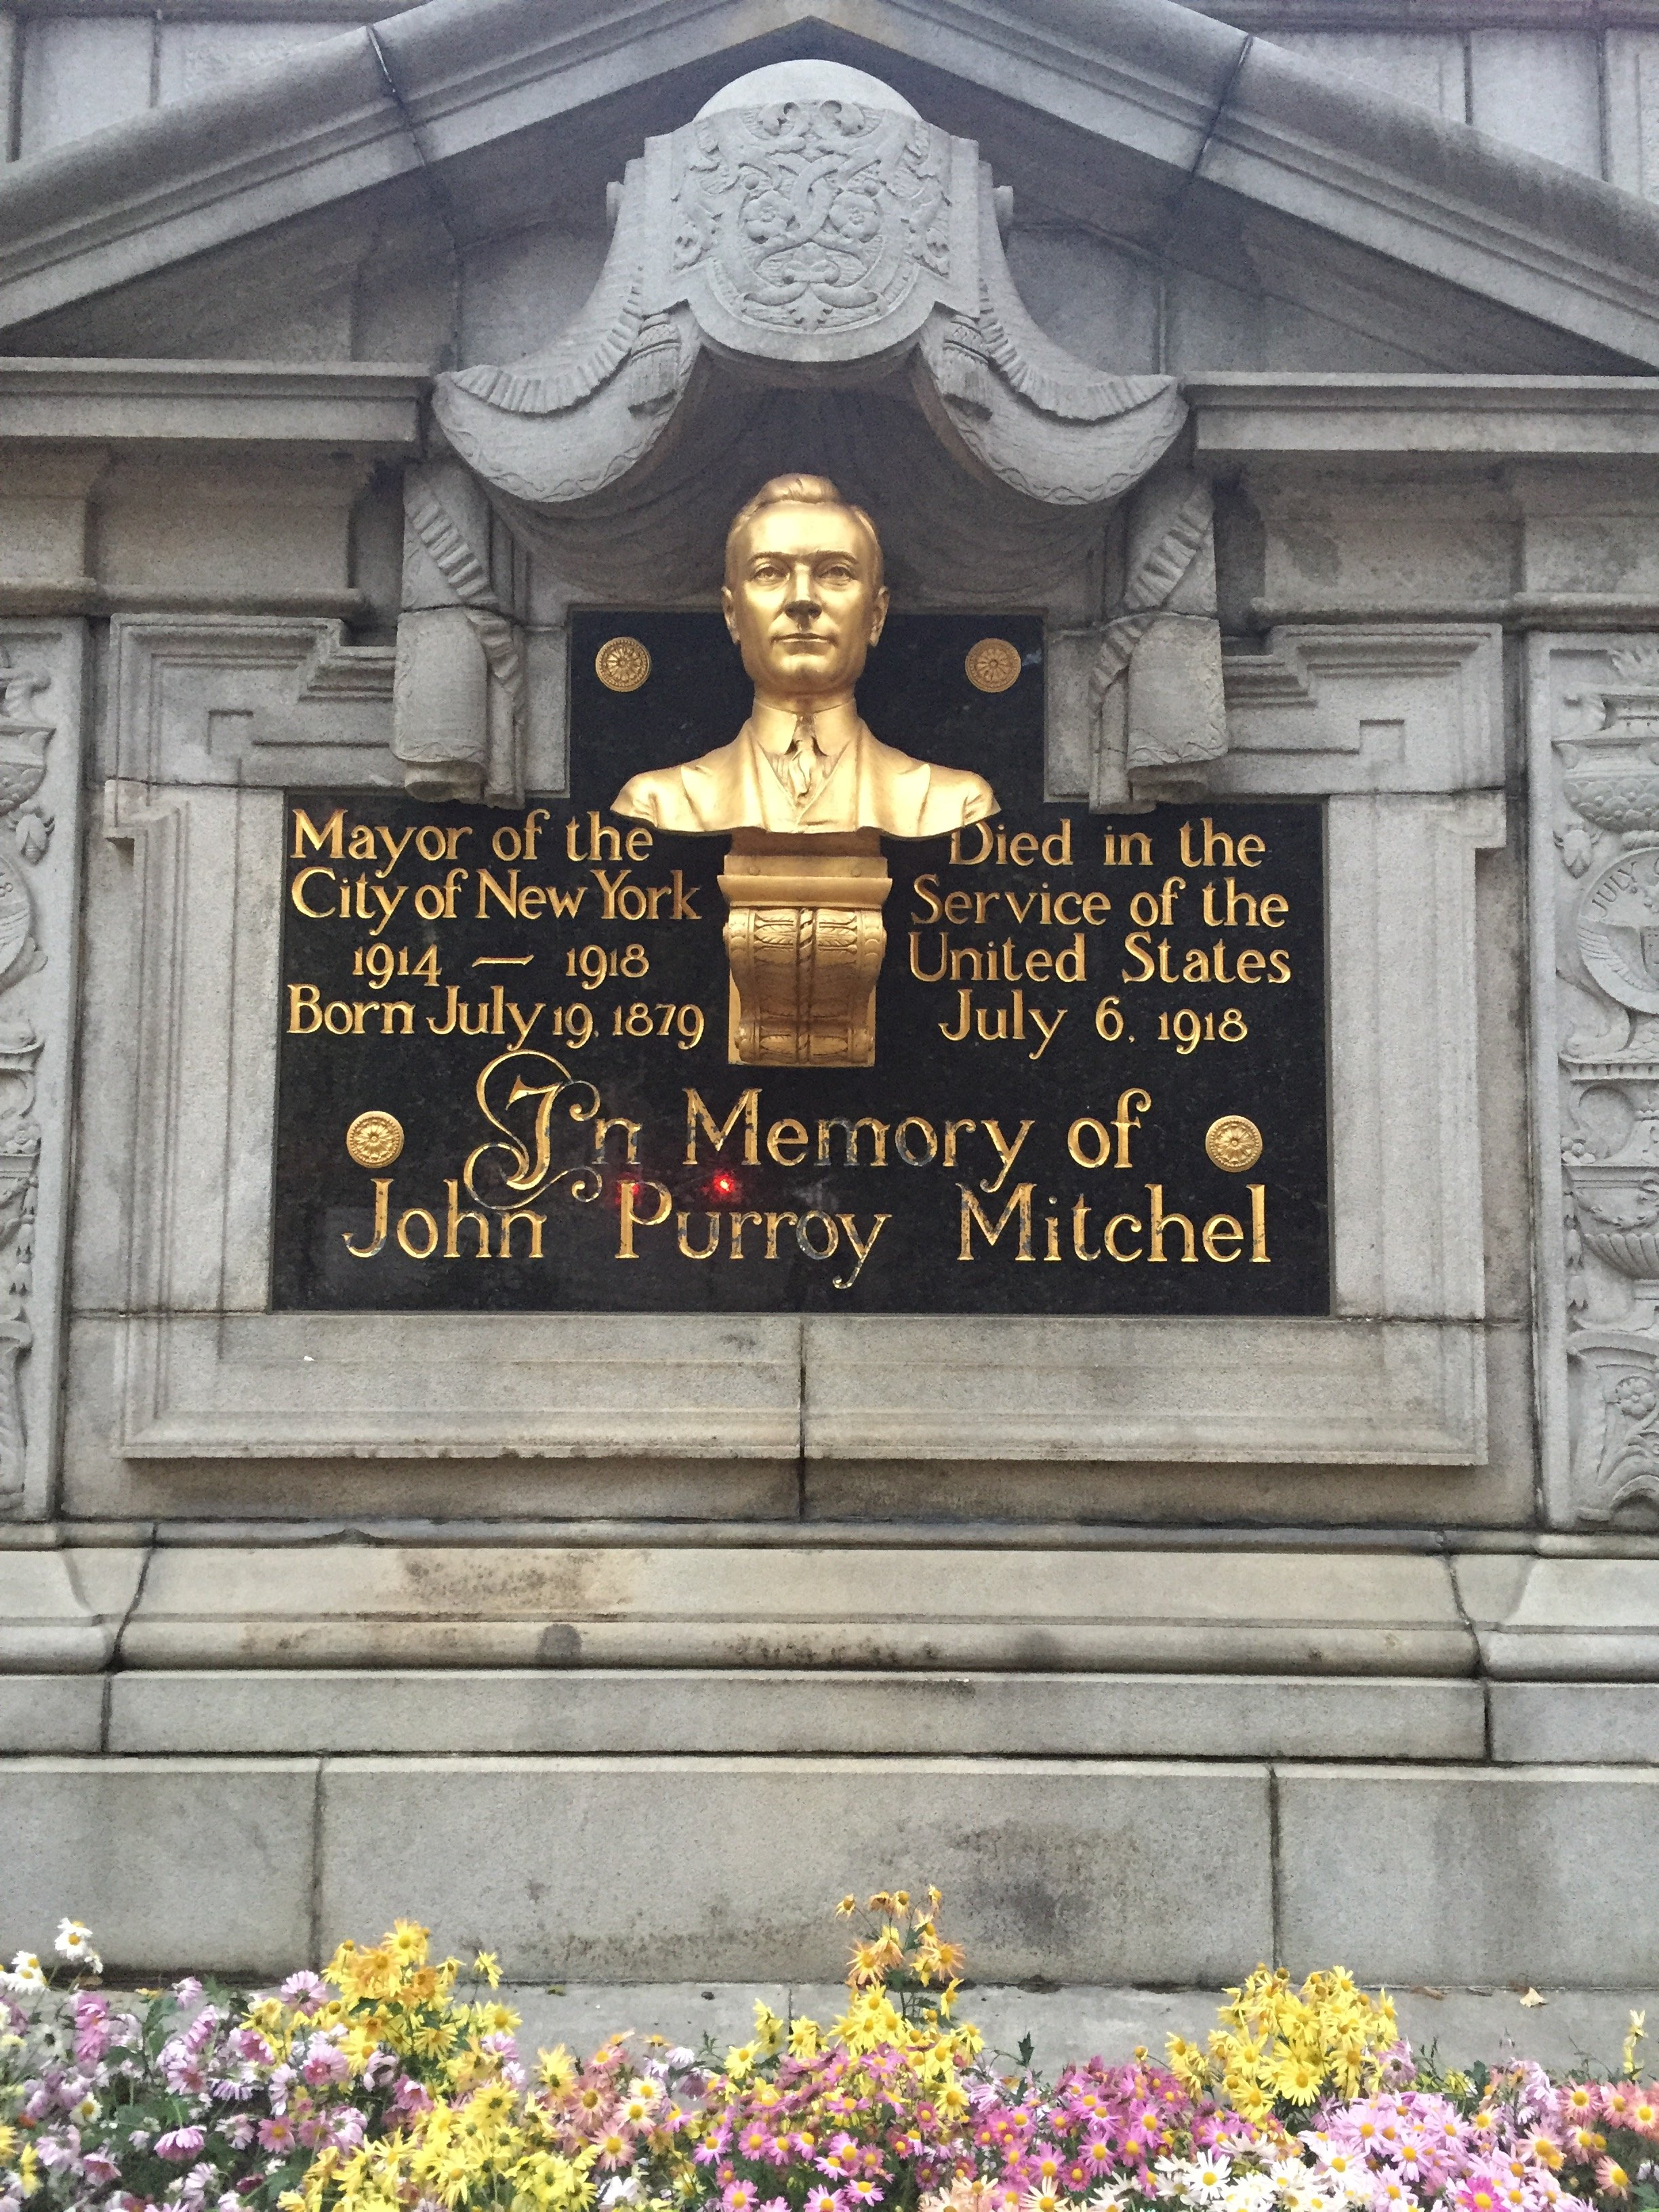 A closer view of the bust and inscription dedicated to Mitchel.